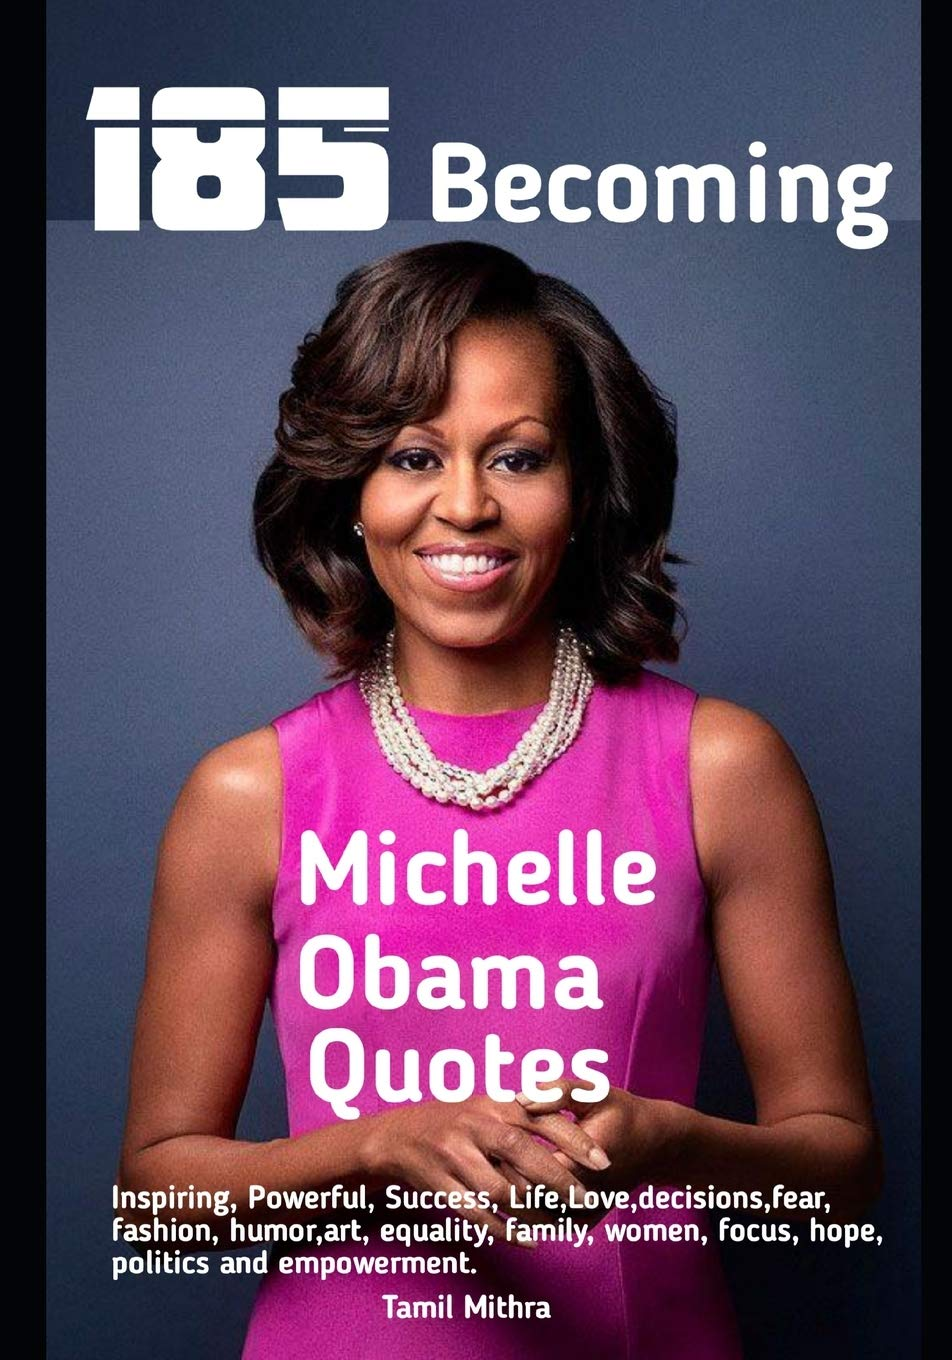 185 Becoming Michelle Obama Quotes Mithra Tamil 9798620256723 Amazon Com Books